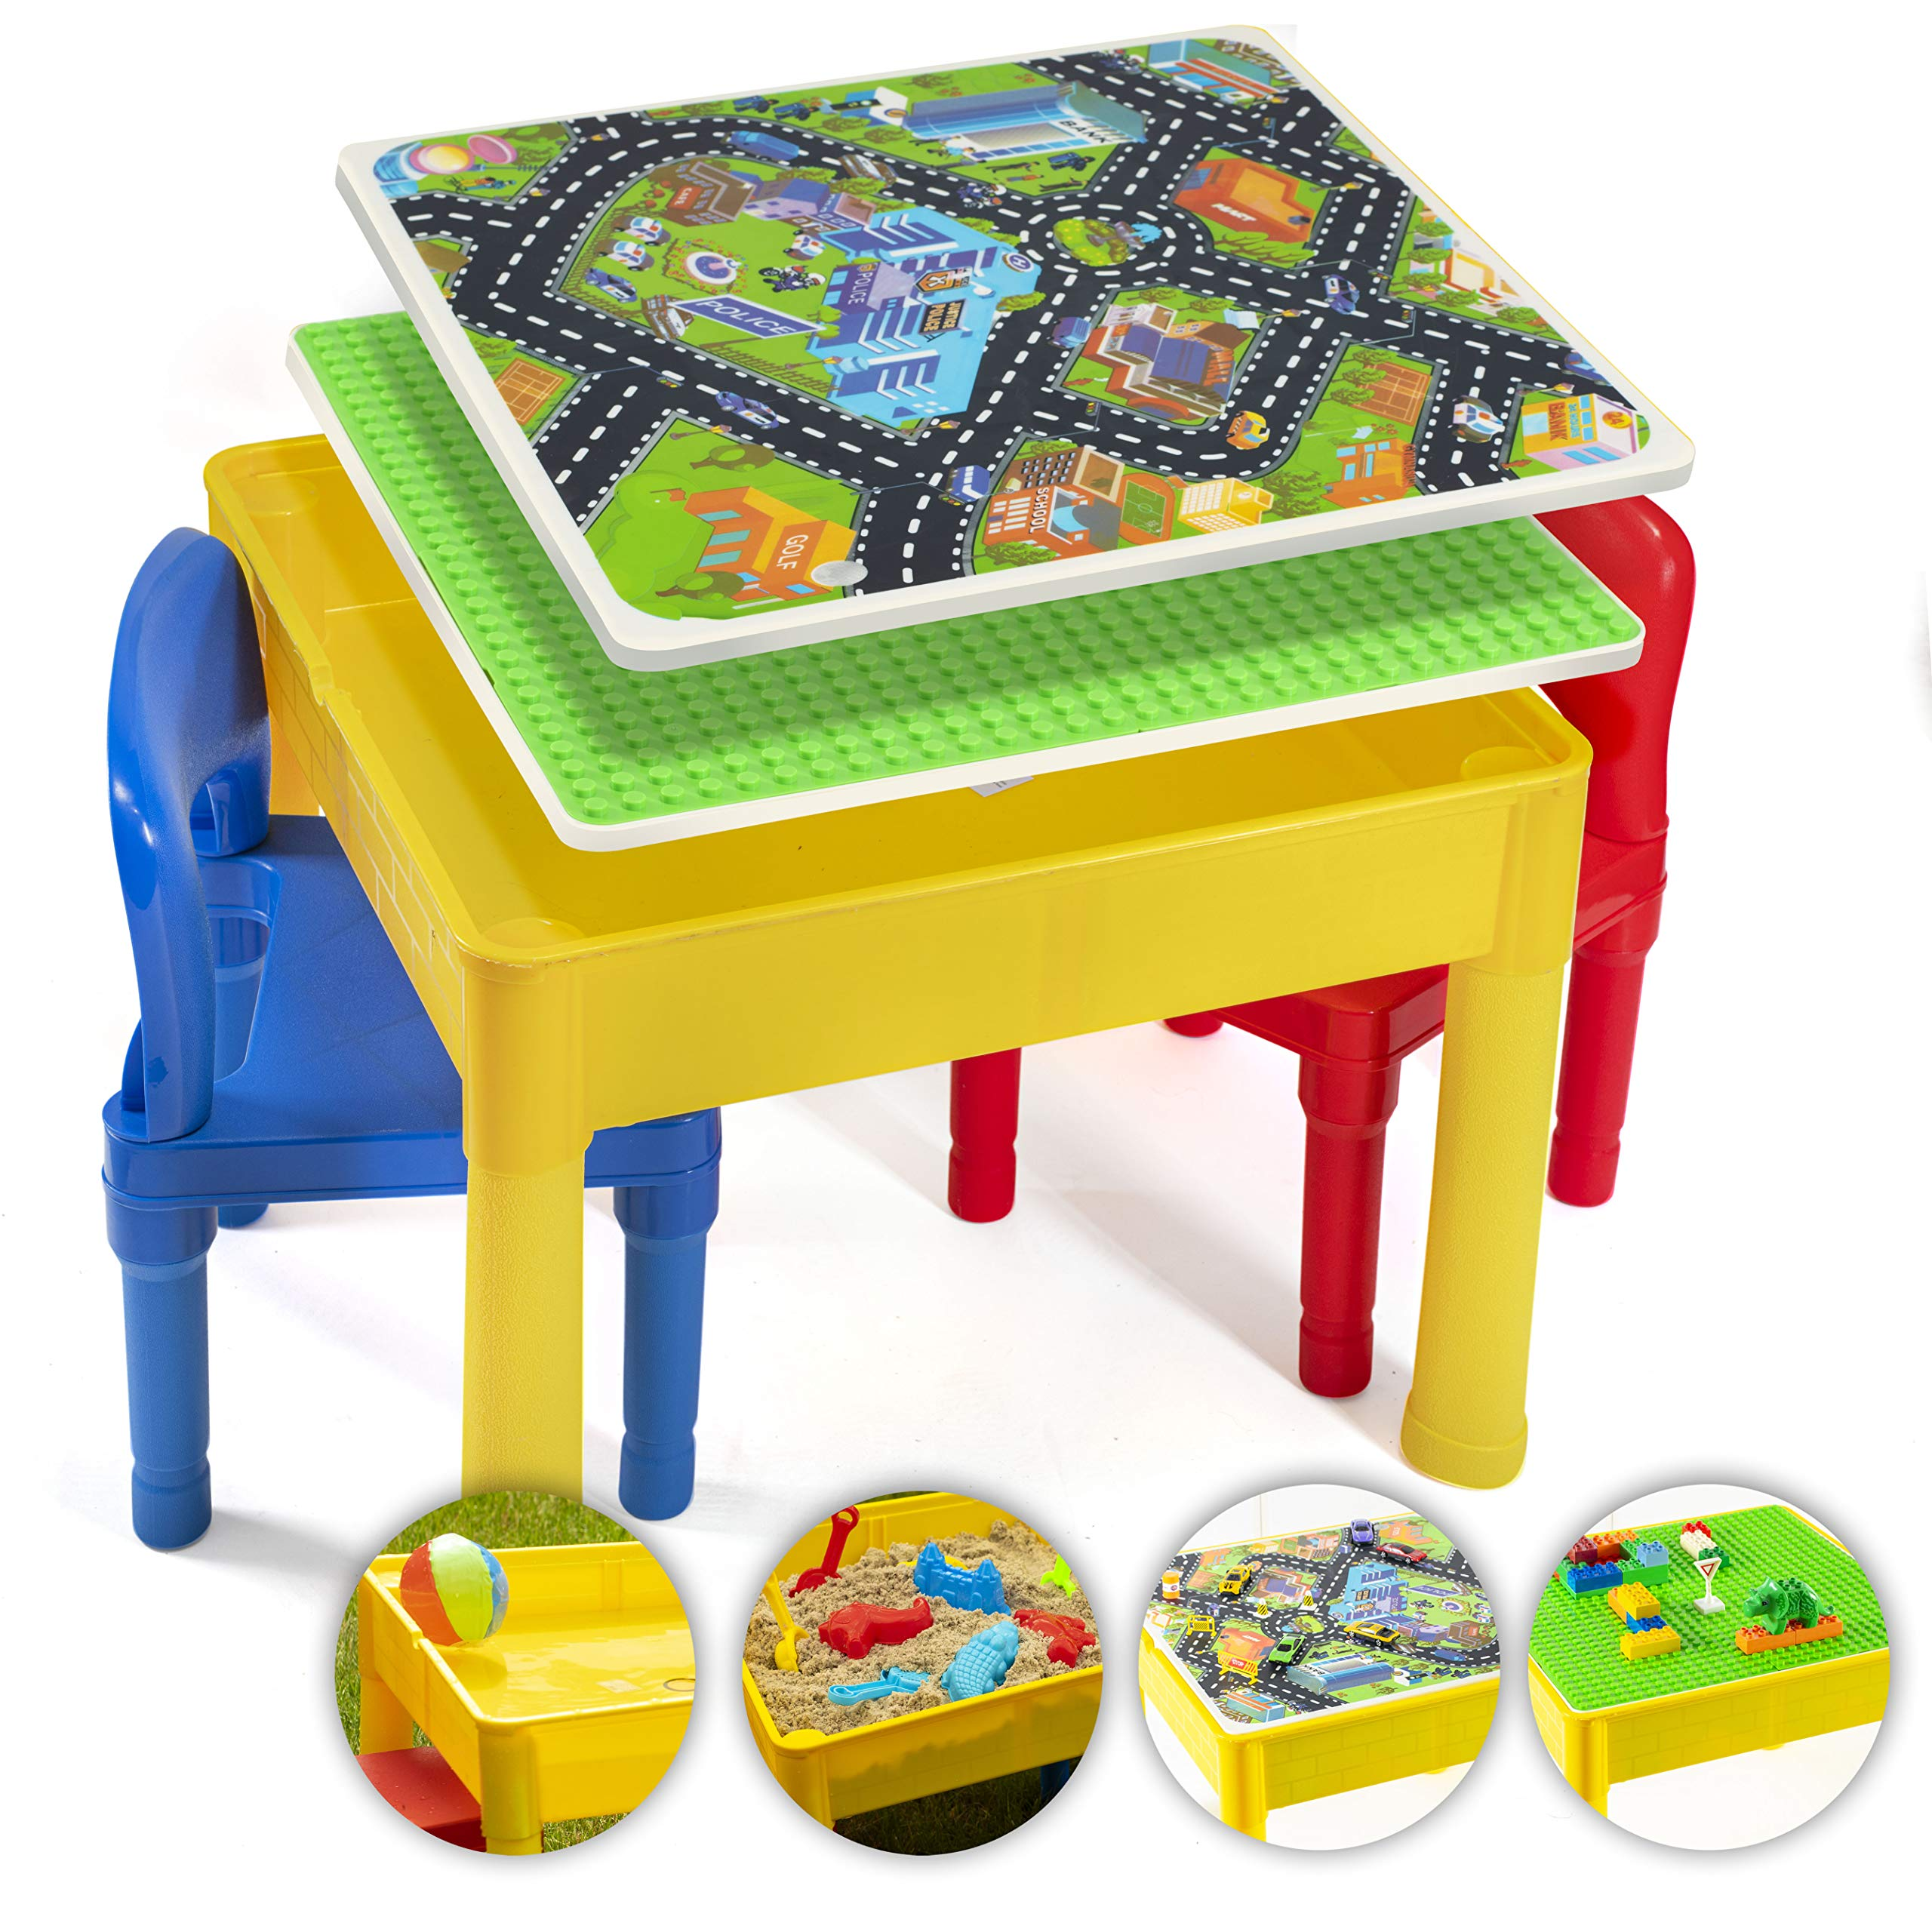 Prextex Kids 5 in 1 Store and Play Craft, Bricks, Water & Car Roads, Activity Play Table Set with 2 Chairs by Prextex